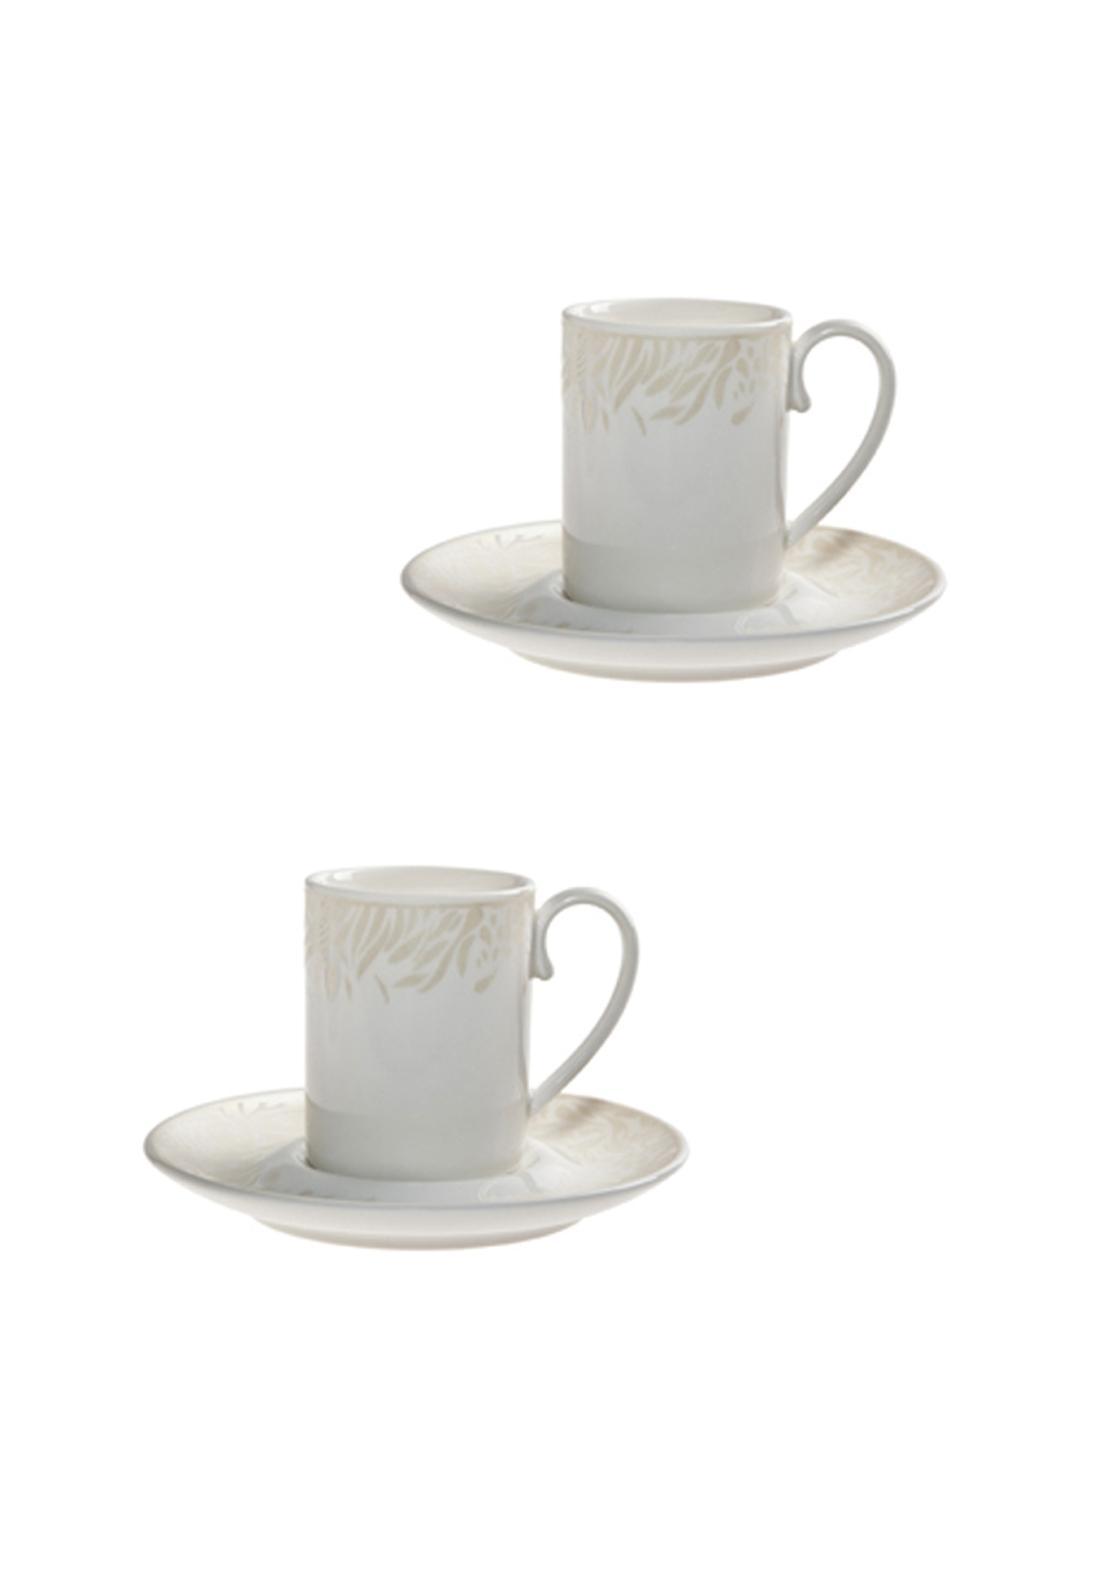 Denby Monsoon Lucille Gold Espresso Cup and Saucer, Set of Two